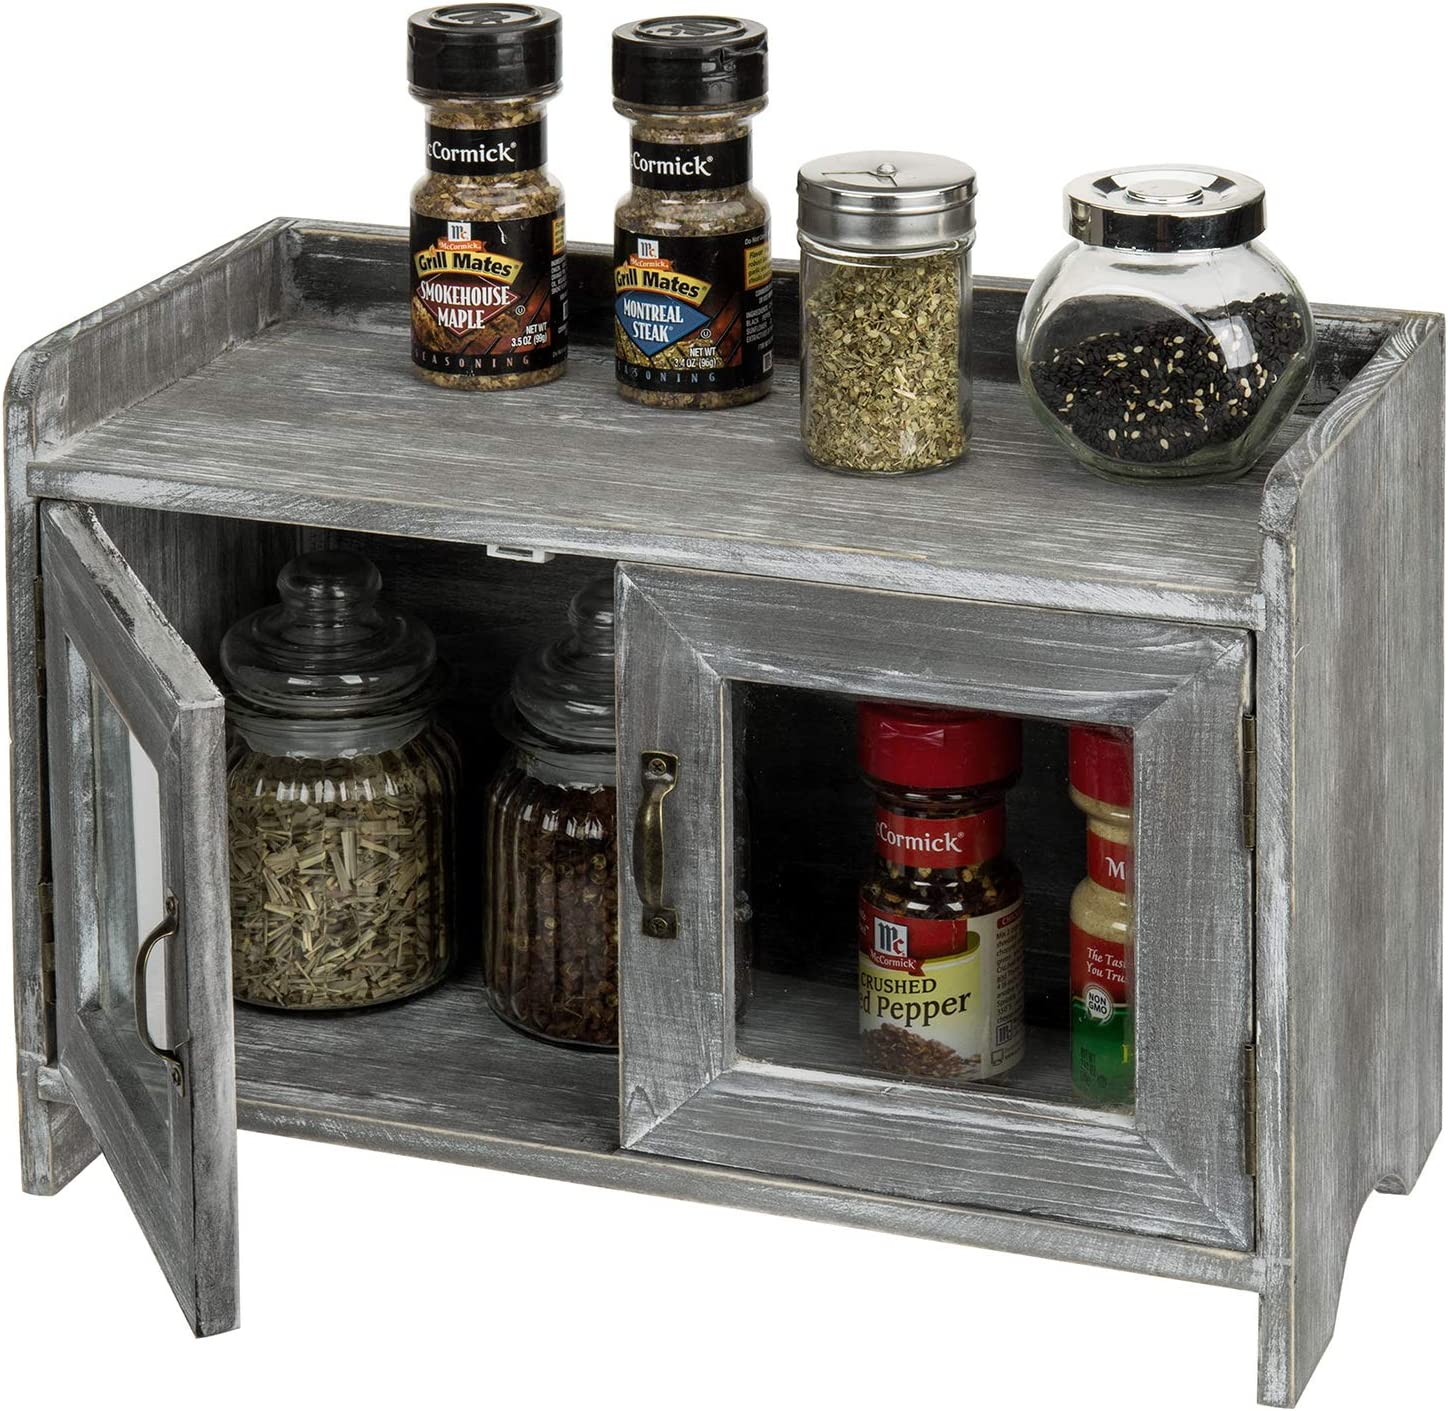 MyGift Rustic Gray Whitewashed Wood Kitchen/Bathroom Counter Top Storage Cabinet with Glass Windows